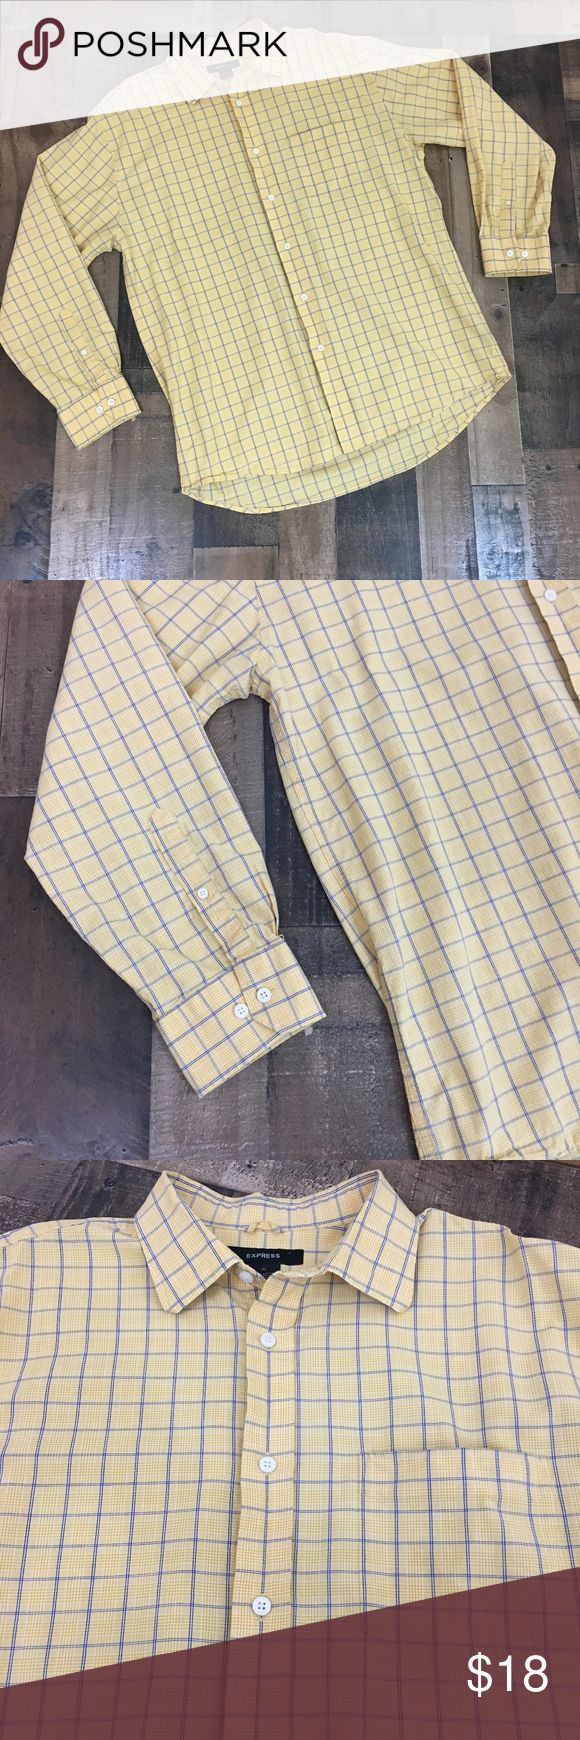 Express Men's Long SleeveButton Down Size XL Express men's long sleeve button down collar shirt  Size: XL Style: Button down Color: Yellow and blue Material: 100% Cotton Condition: In excellent used condition with plenty of useful life left.  Measurements Bust (Armpit to Armpit): 26in Sleeve Length: 25in Length – Back (Top to Bottom): 35in   From a smoke and pet free home, offers welcome. HAPPY POSHING!!!  Item #: A55P083 Express Shirts Casual Button Down Shirts